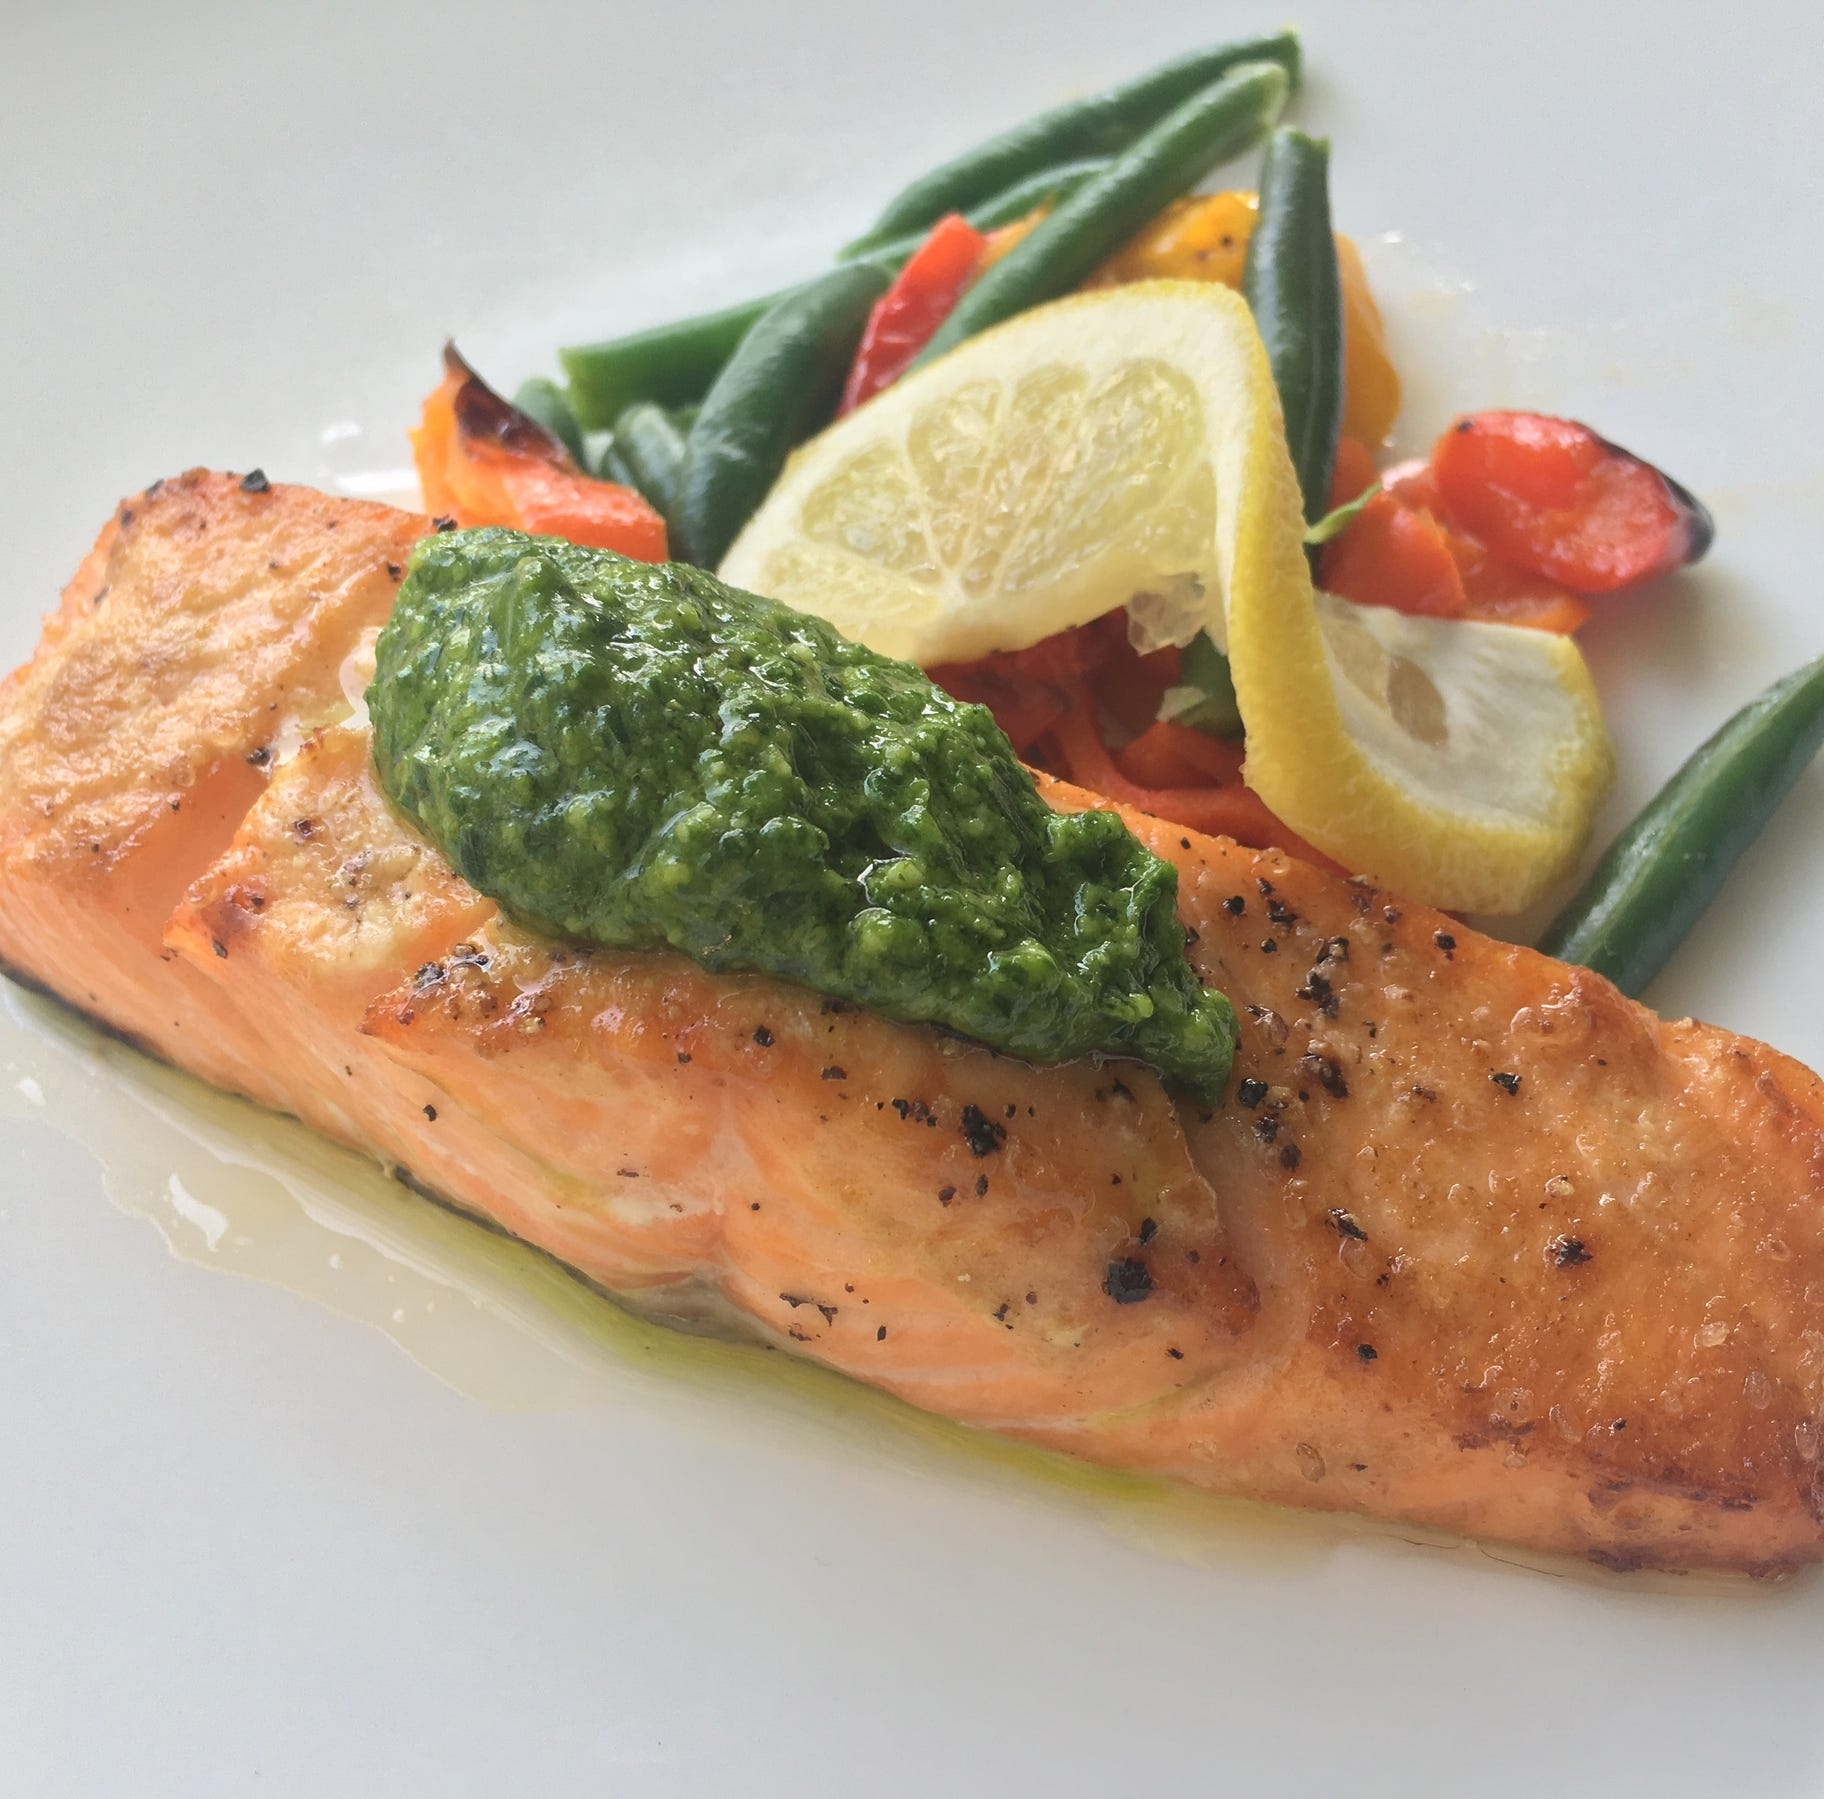 Tips for preparing salmon: Brine, don't overcook, don't shy away from salt